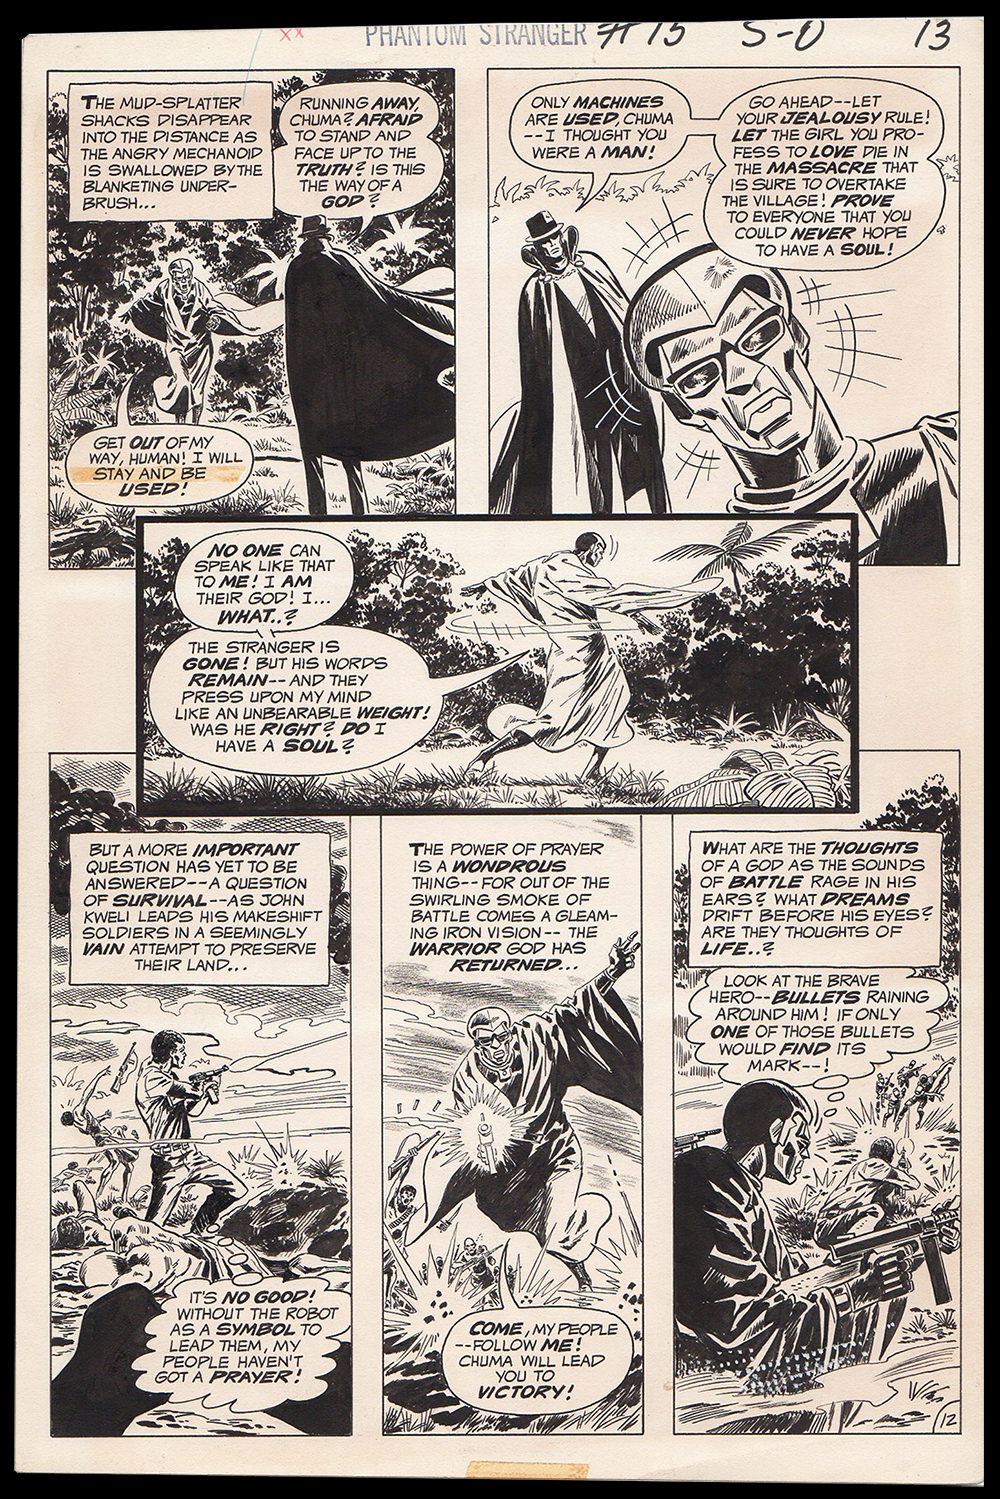 Image: Phantom Stranger #15 page 15 art by Jim Aparo